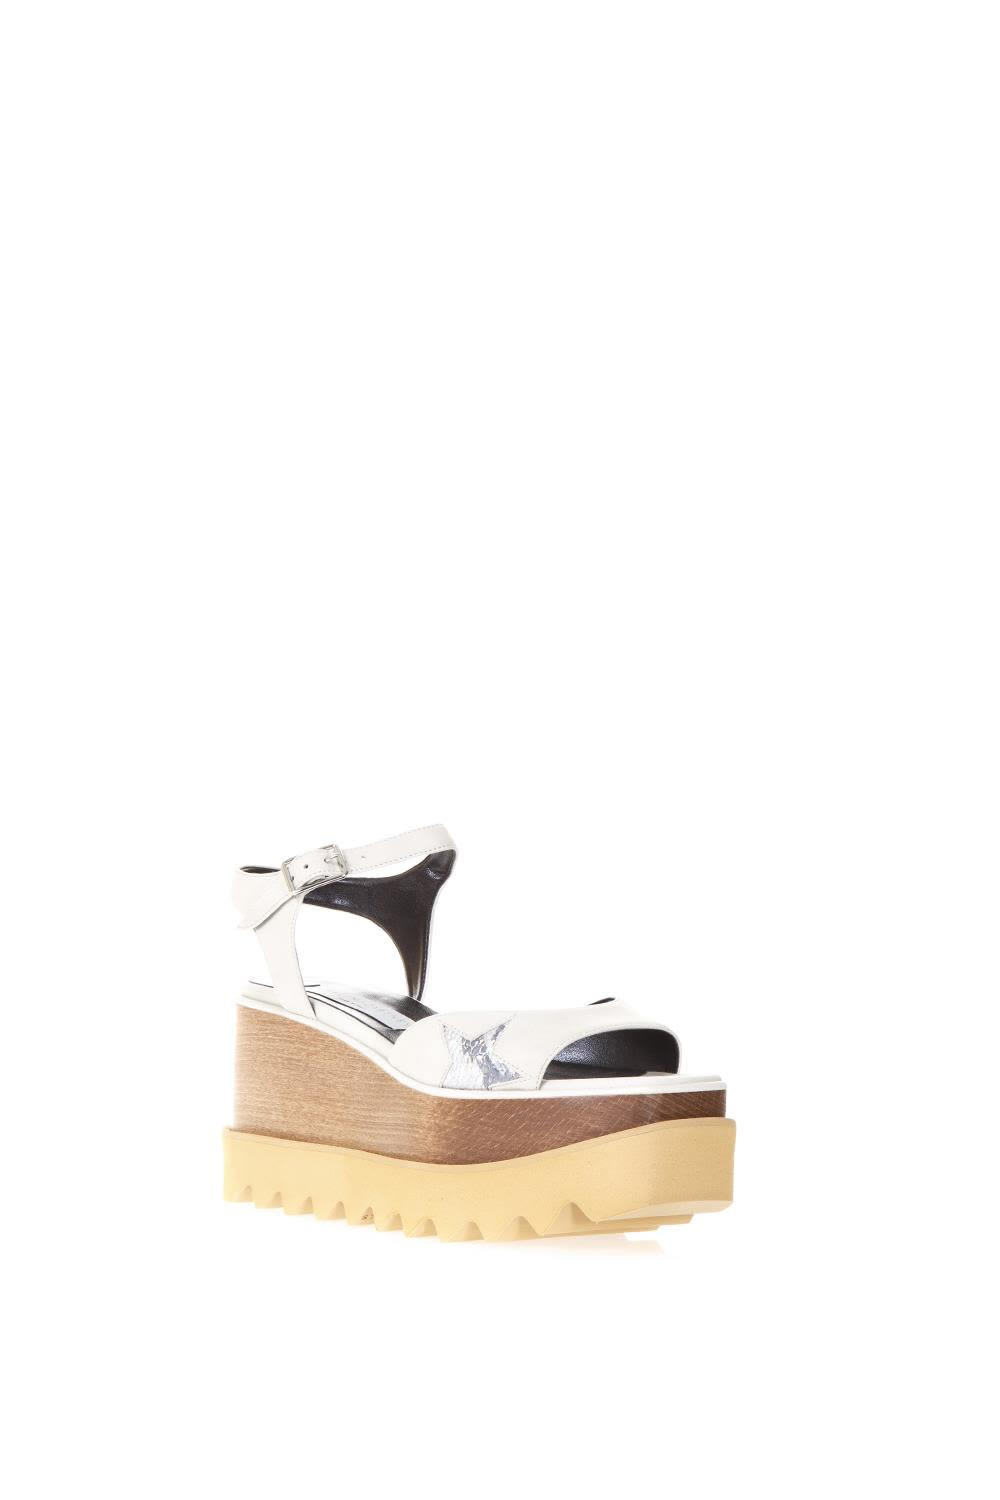 ELYSE WHITE FAUX LEATHER SANDALS